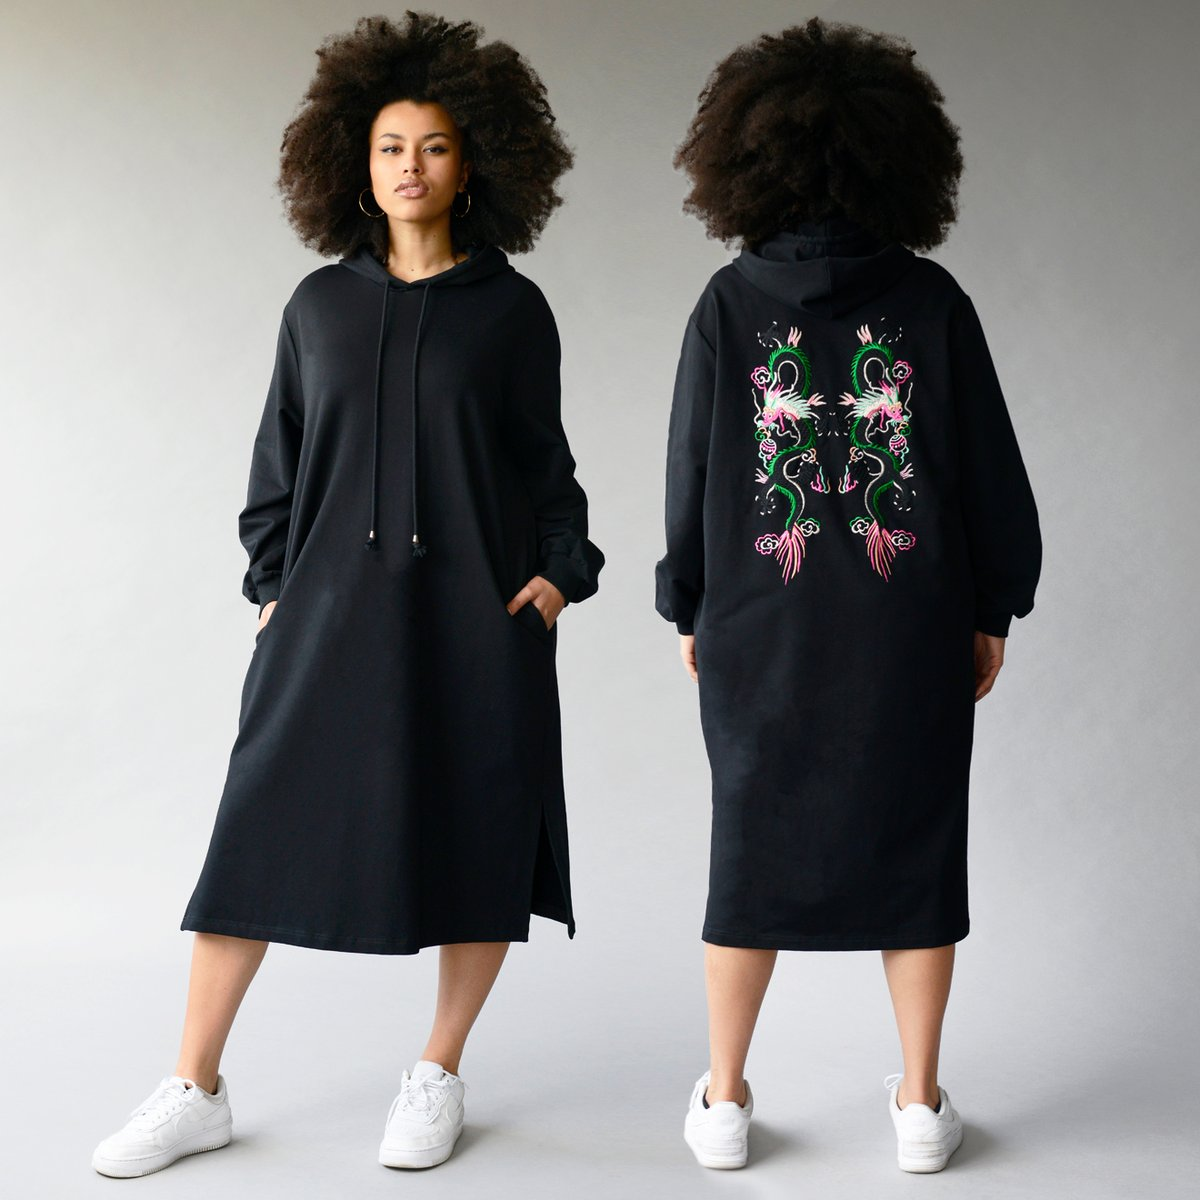 test Twitter Media - This dragon embroidered hoodie dress is flying out #annascholz #plussizedesigner #hoodiedress https://t.co/U0SDDxGbKh https://t.co/l6w2Y1amDx